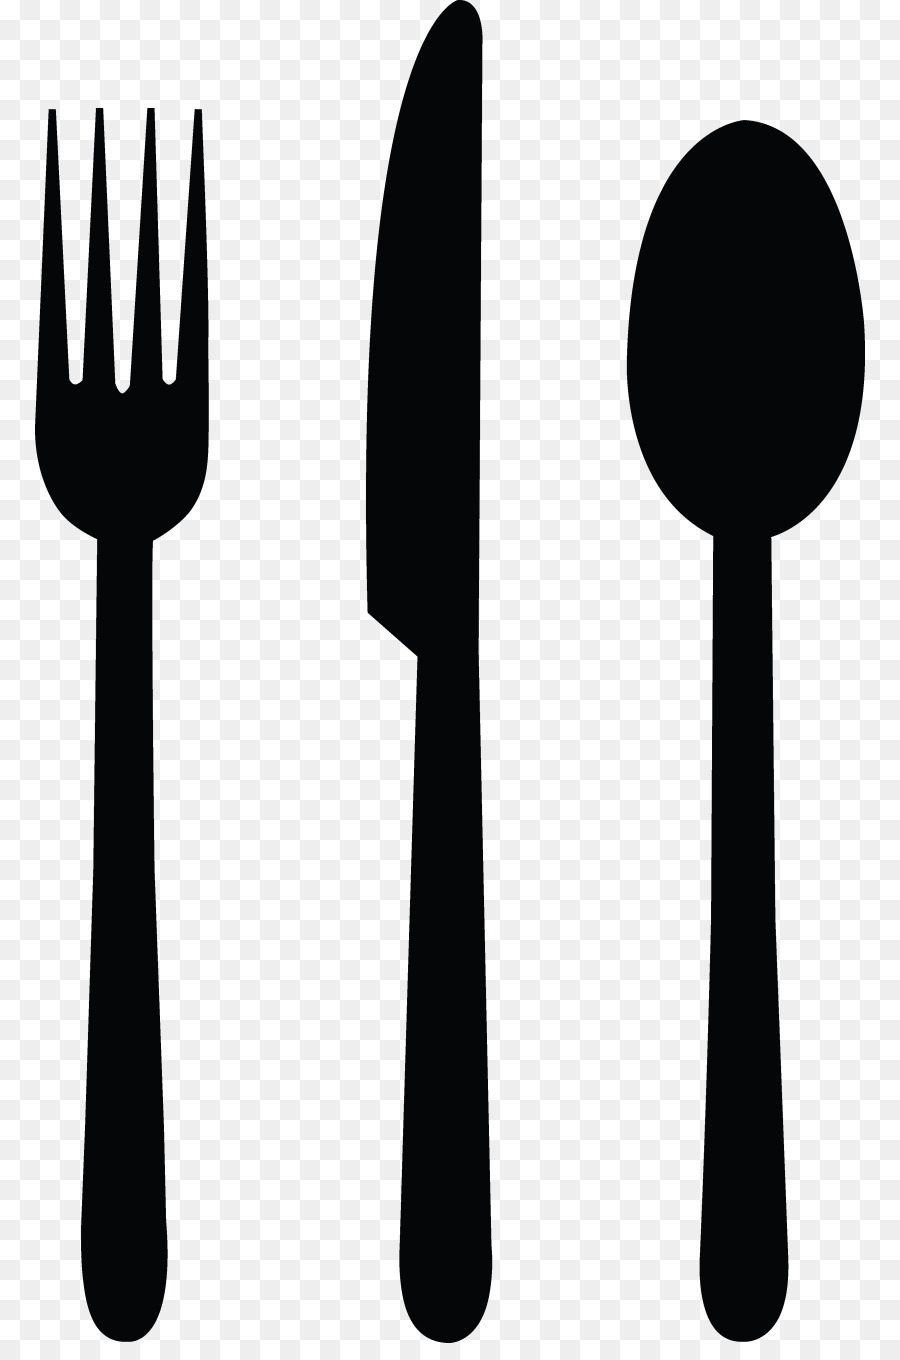 knife fork spoon cutlery clip art spoon and fork png download rh kisspng com knife and fork clip art black and white free knife and fork clipart